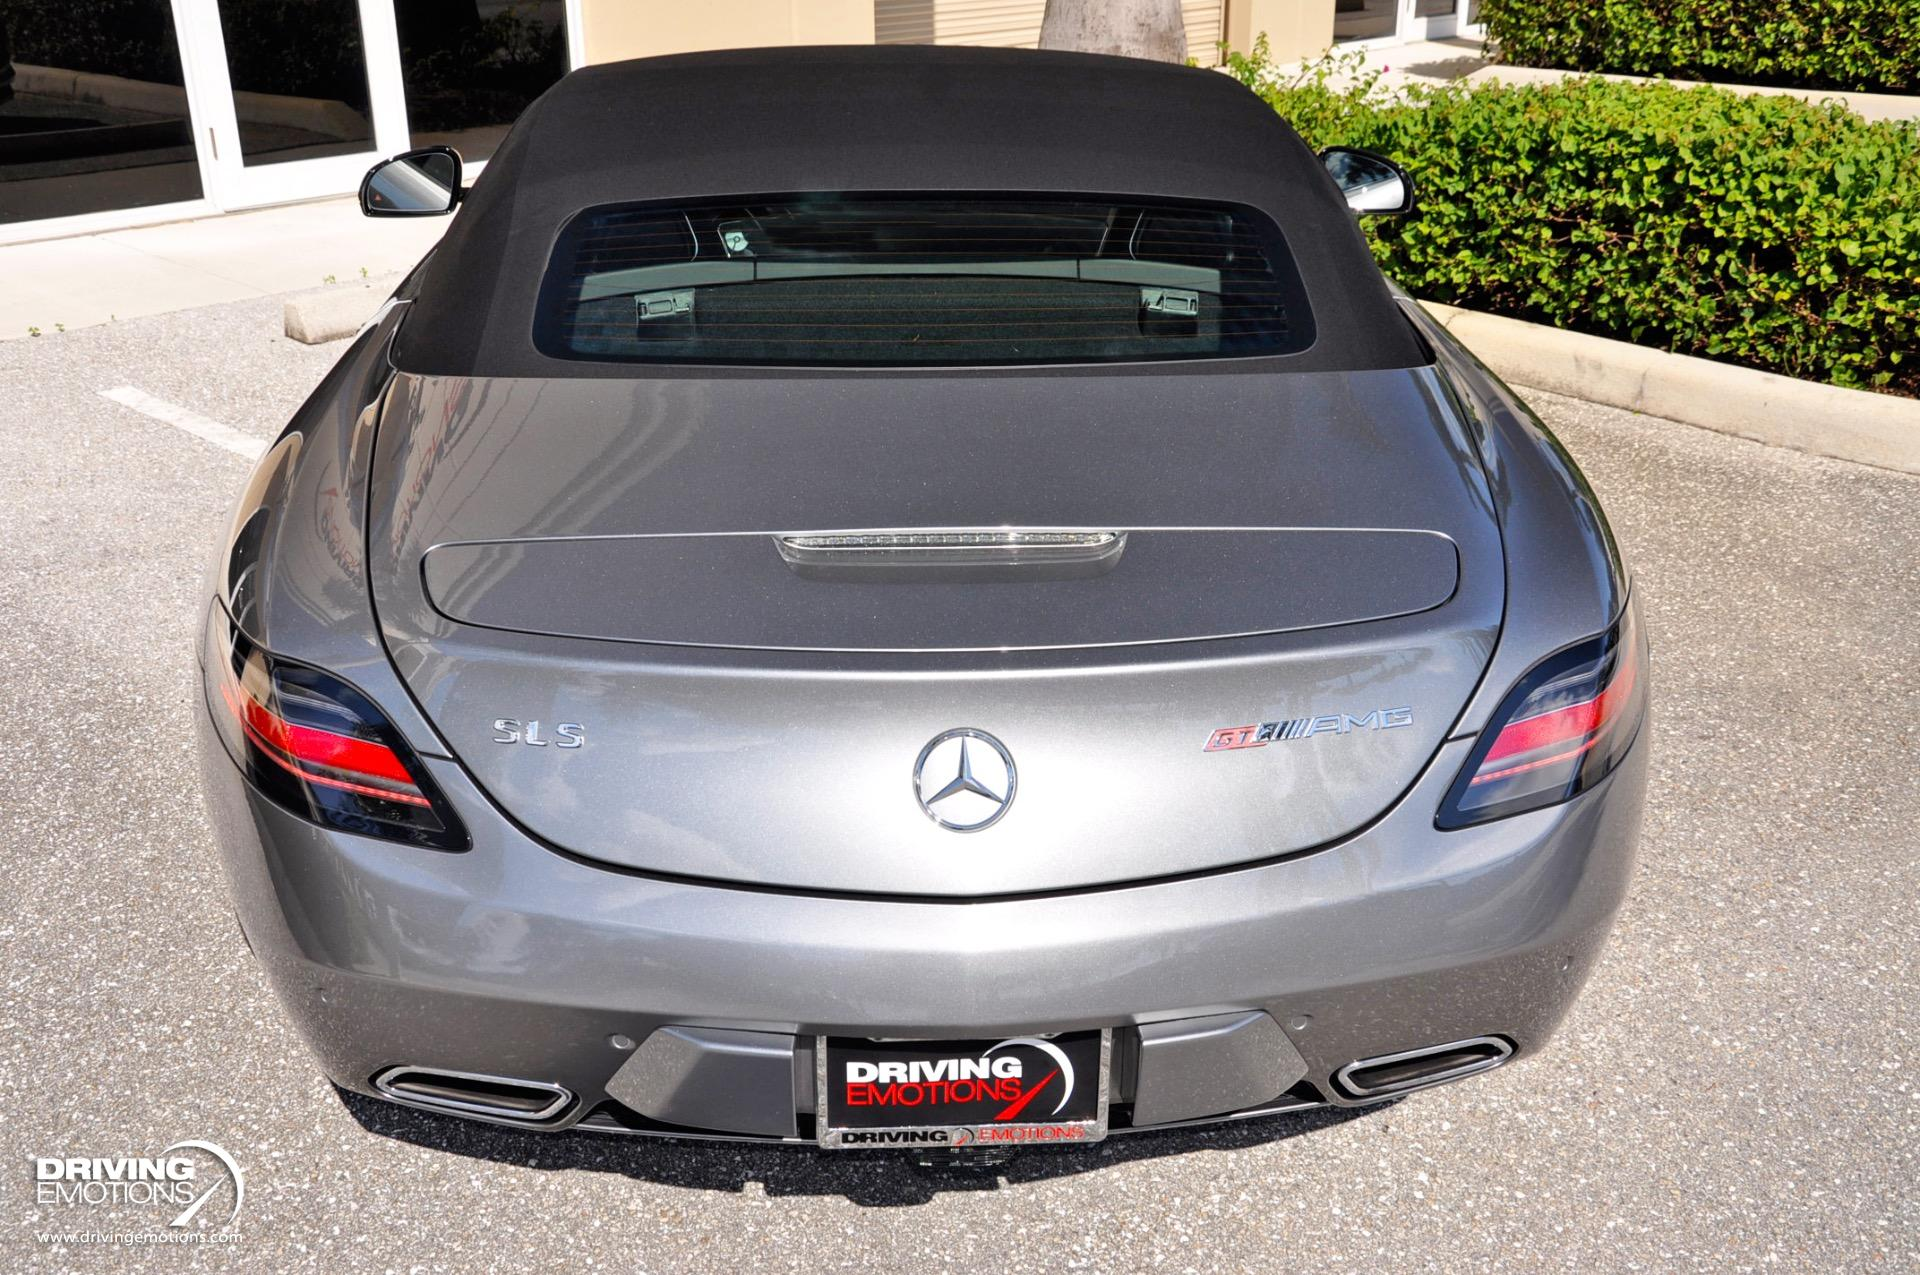 2013 Mercedes Benz Sls Amg Gt Roadster Gt Roadster Stock 6147 For Sale Near Lake Park Fl Fl Mercedes Benz Dealer